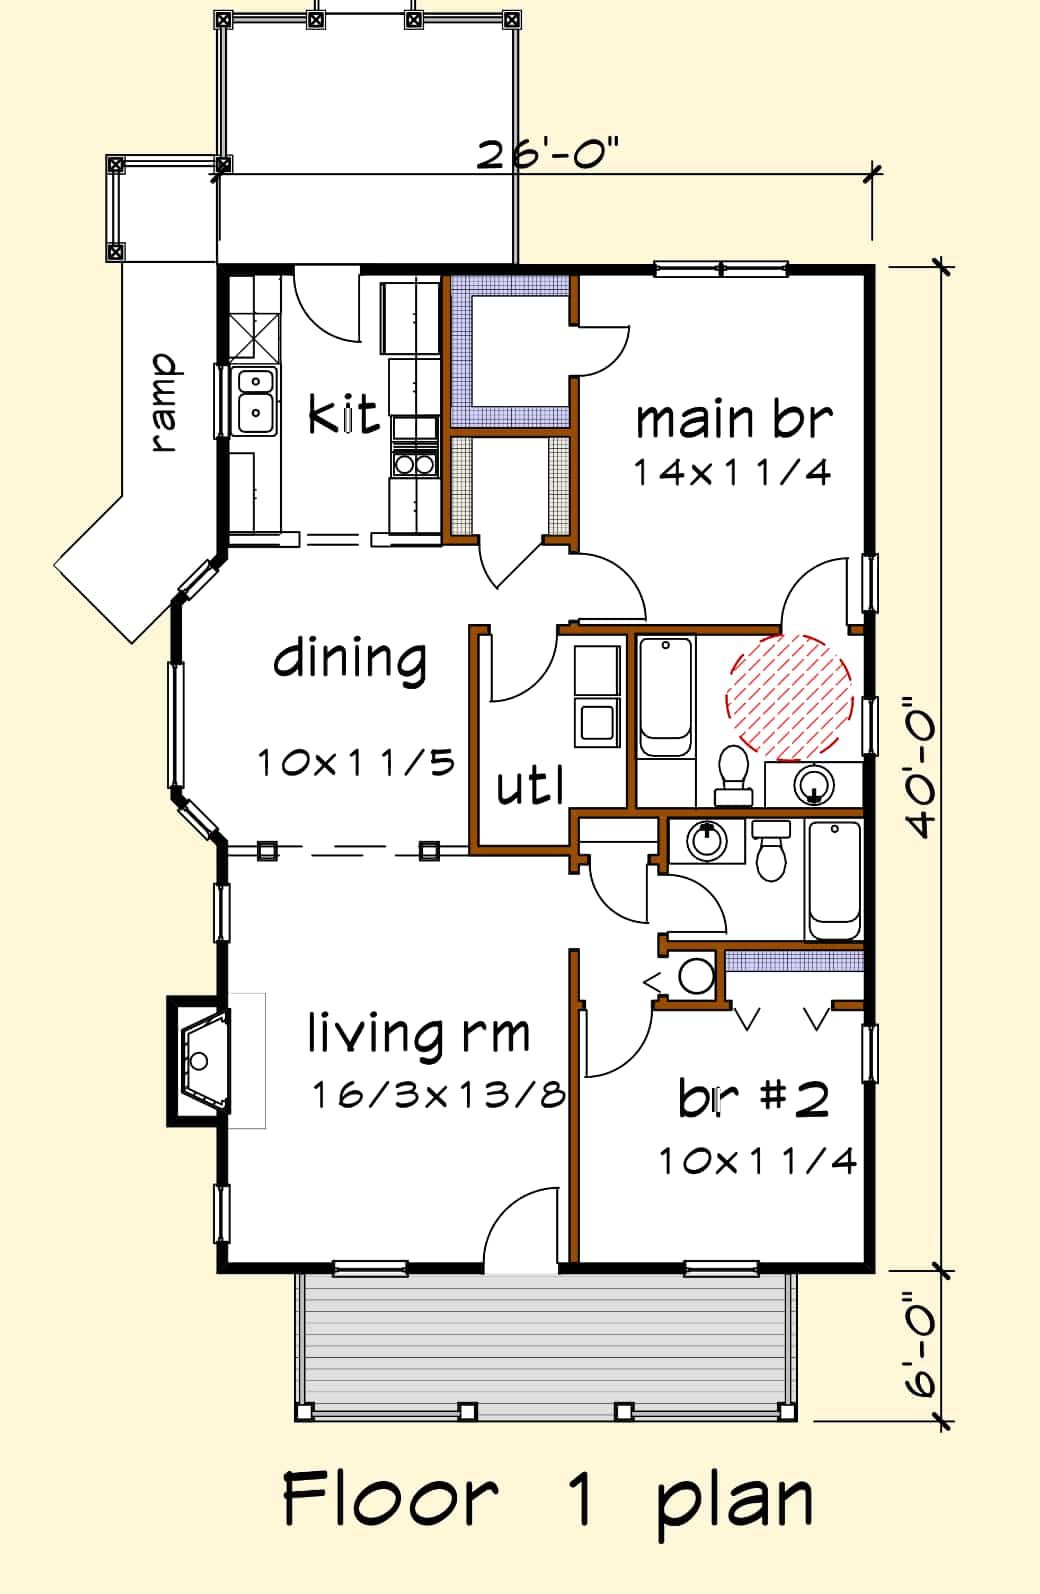 House Plan Ud1014a Universal Design Series Thompsonplans Com House Plans Free House Plans Small House Floor Plans